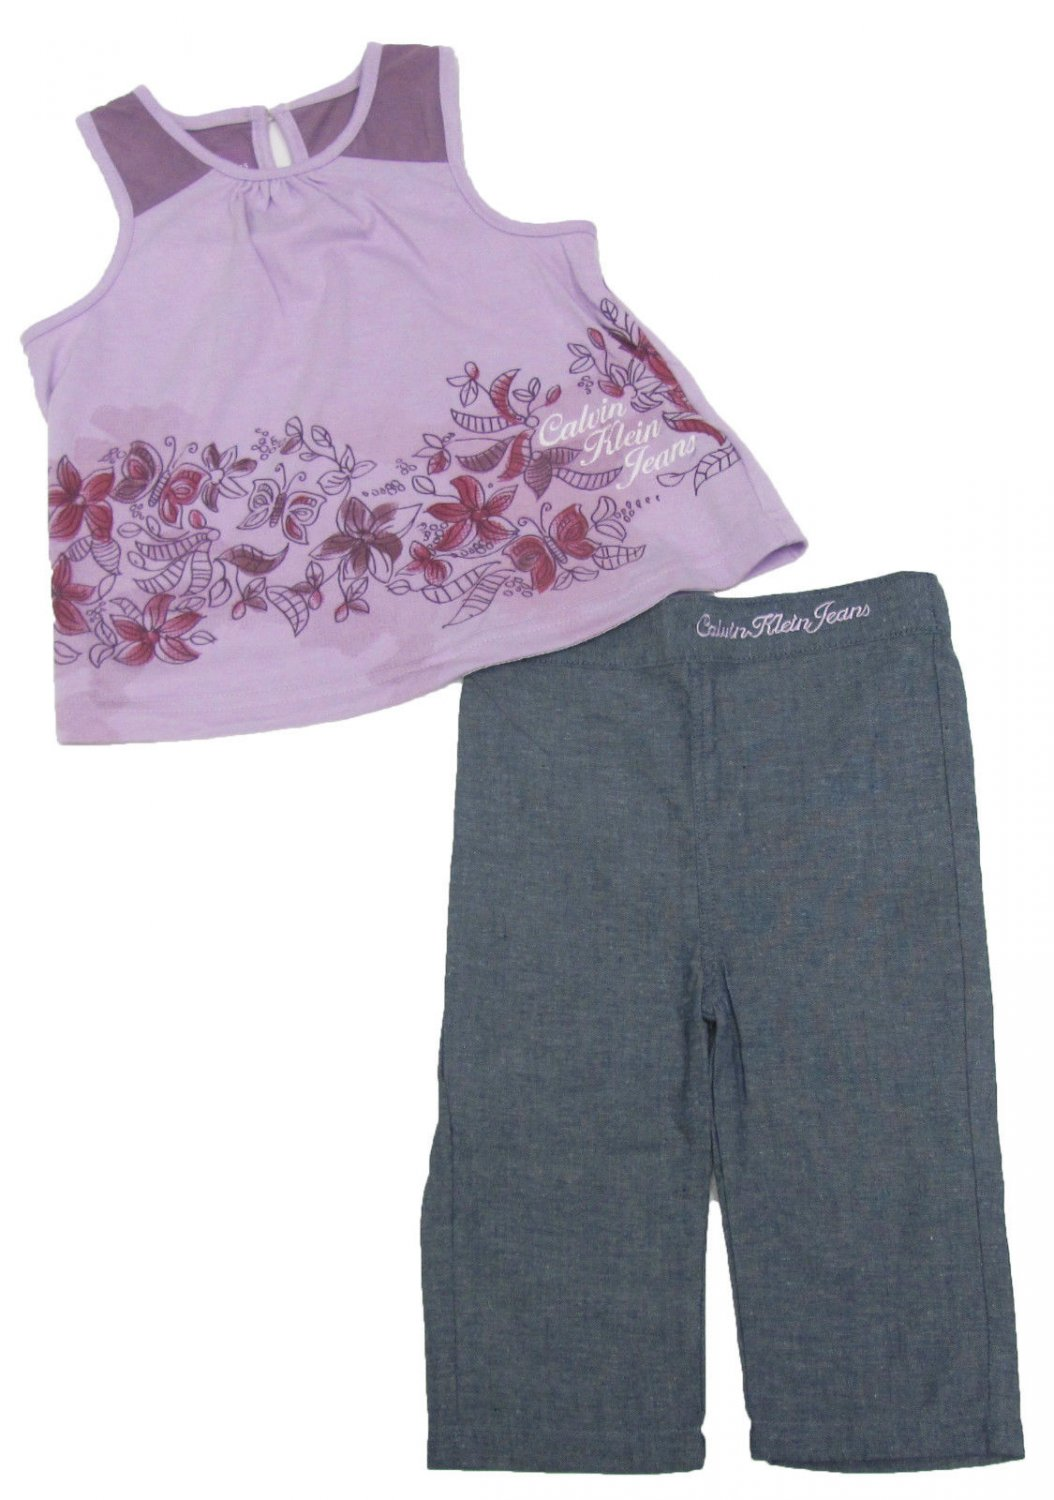 Calvin Klein Jeans 24 Mos Girls 2-Piece Set Purple Tank Top Shirt Dark Blue Chambray Pants